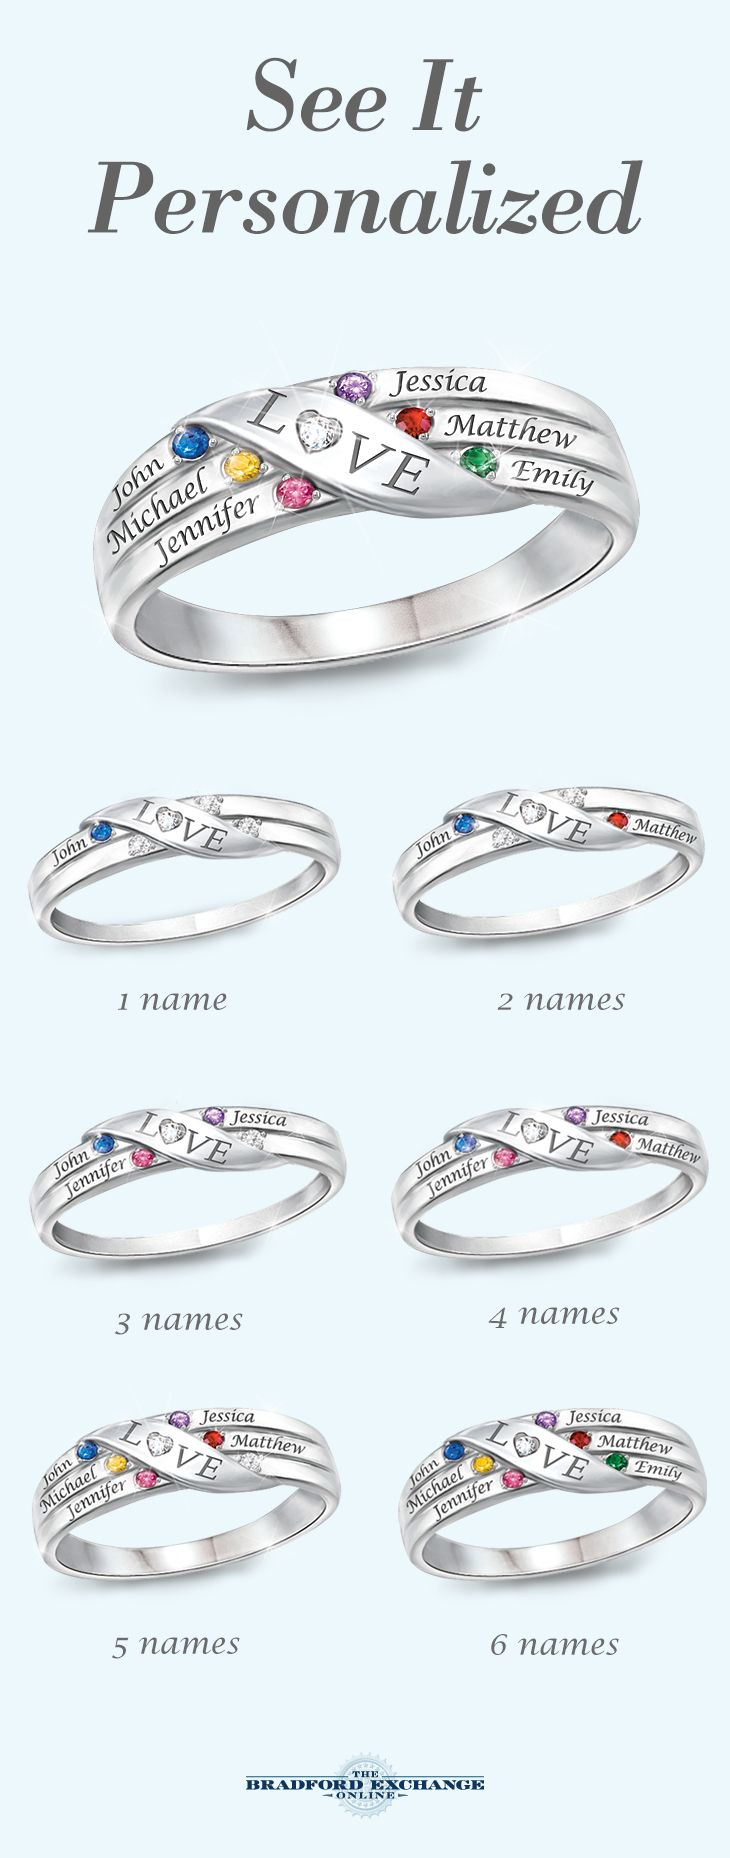 Want to personalize this ring for Mother's Day? We offer free personalization allowing you to add up to 6 crystal birthstones and 6 engraved names, making this a one-of-kind gift for Mom. Plus, we offer the best guarantee in the business with jewelry returns up to 120 days and free return shipping. Only from The Bradford Exchange. Hurry to get it to Mom on time!